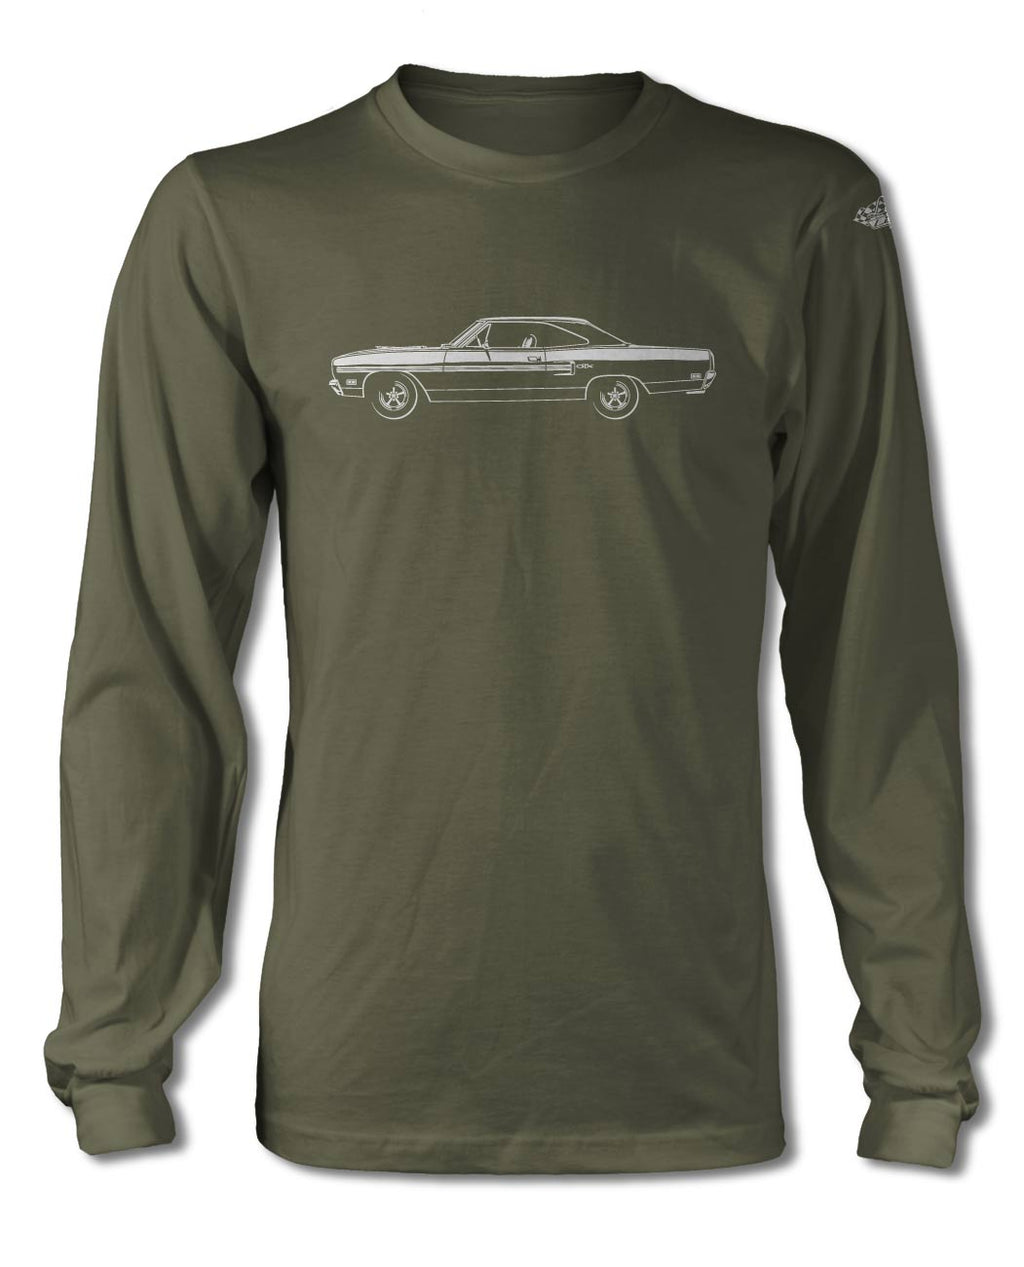 1970 Plymouth GTX Coupe T-Shirt - Long Sleeves - Side View